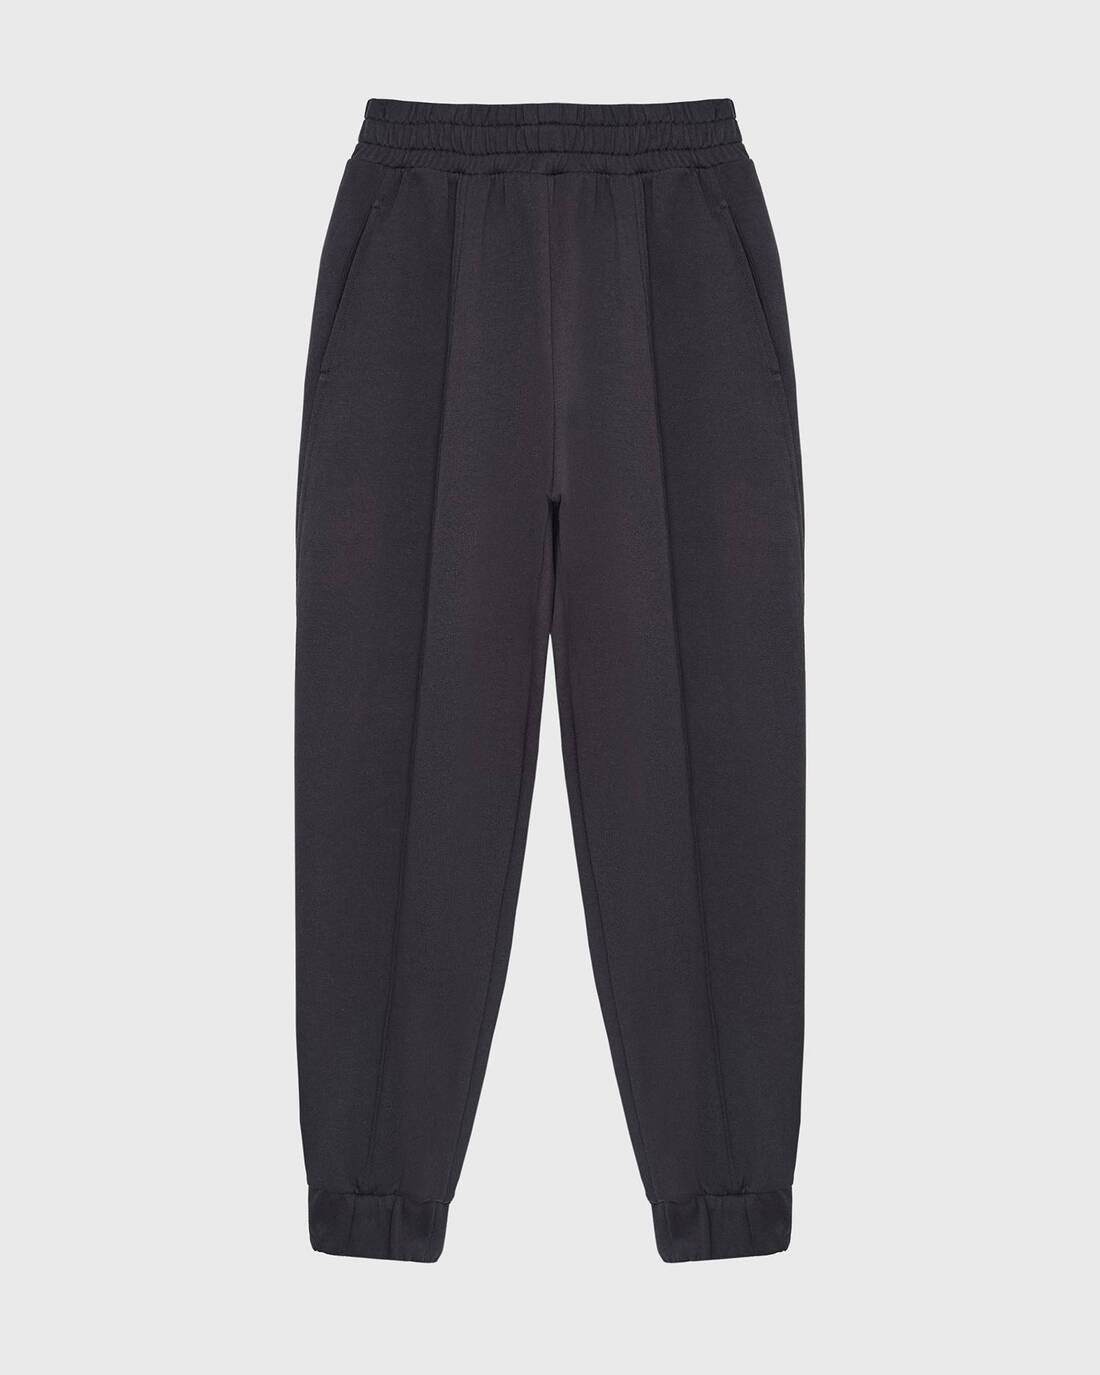 Loose fit jogger pants